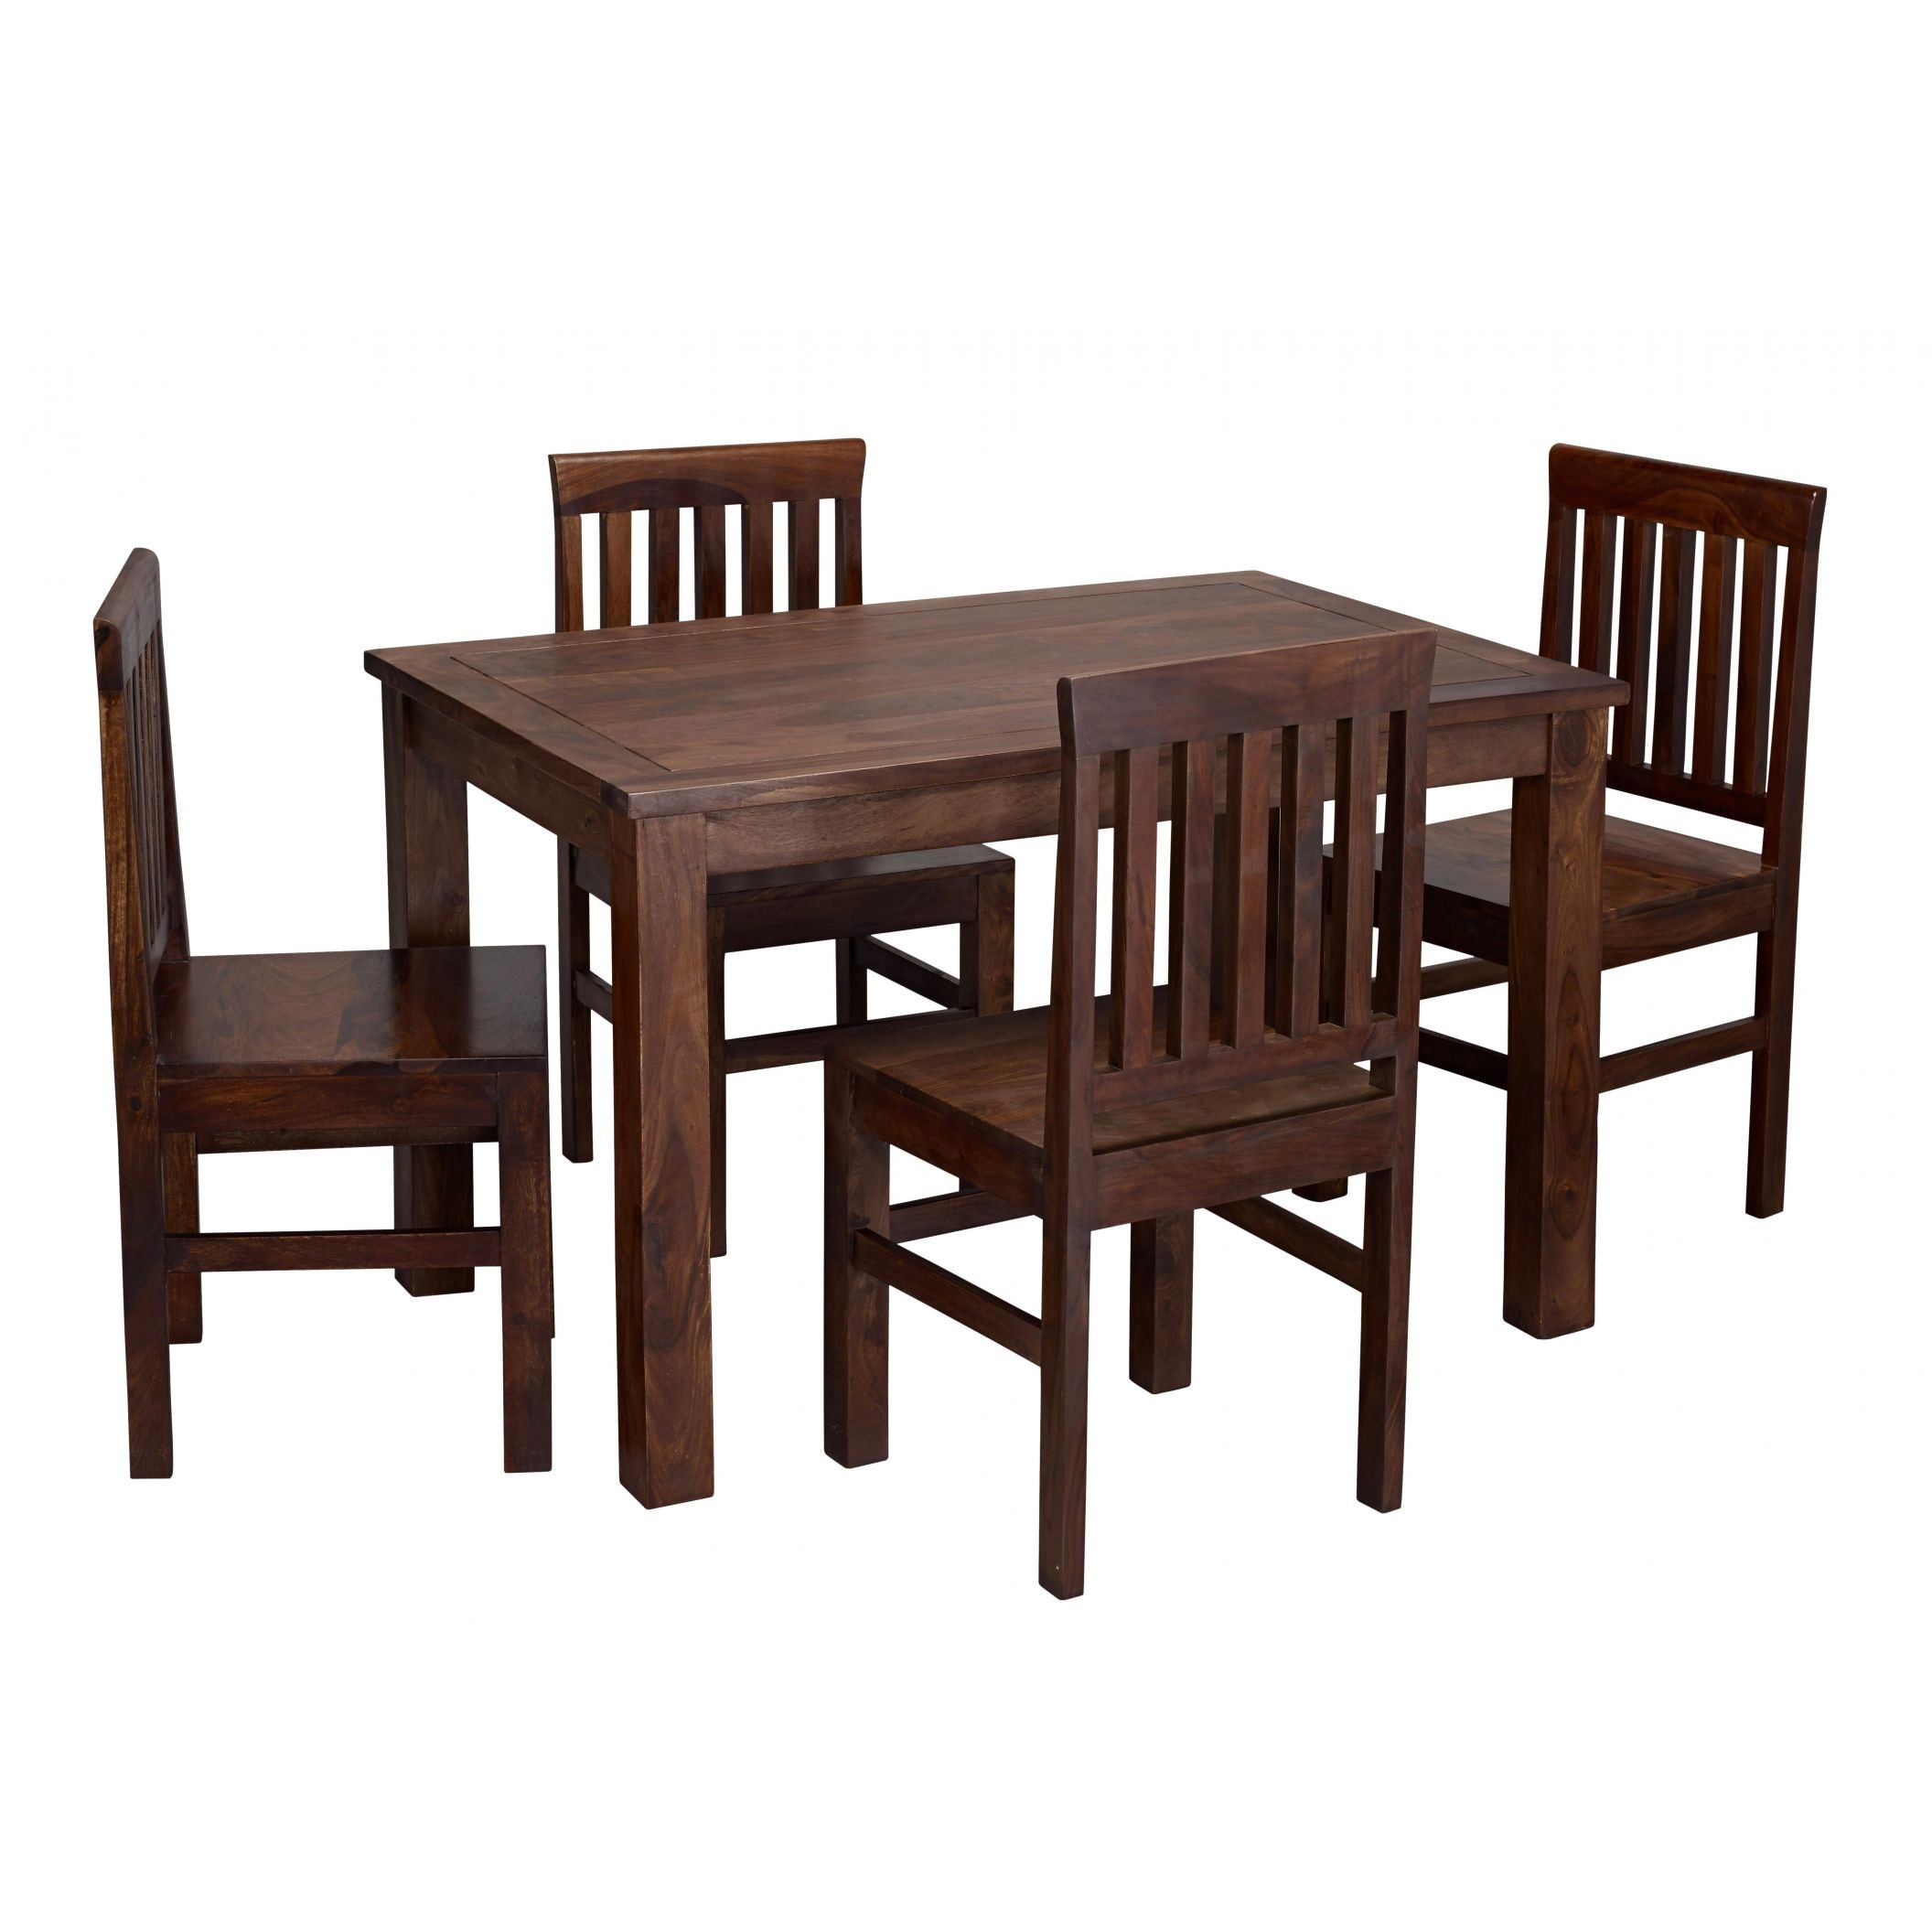 Excellent Indian Dining Table Set Andrewgaddart Wooden Chair Designs For Living Room Andrewgaddartcom